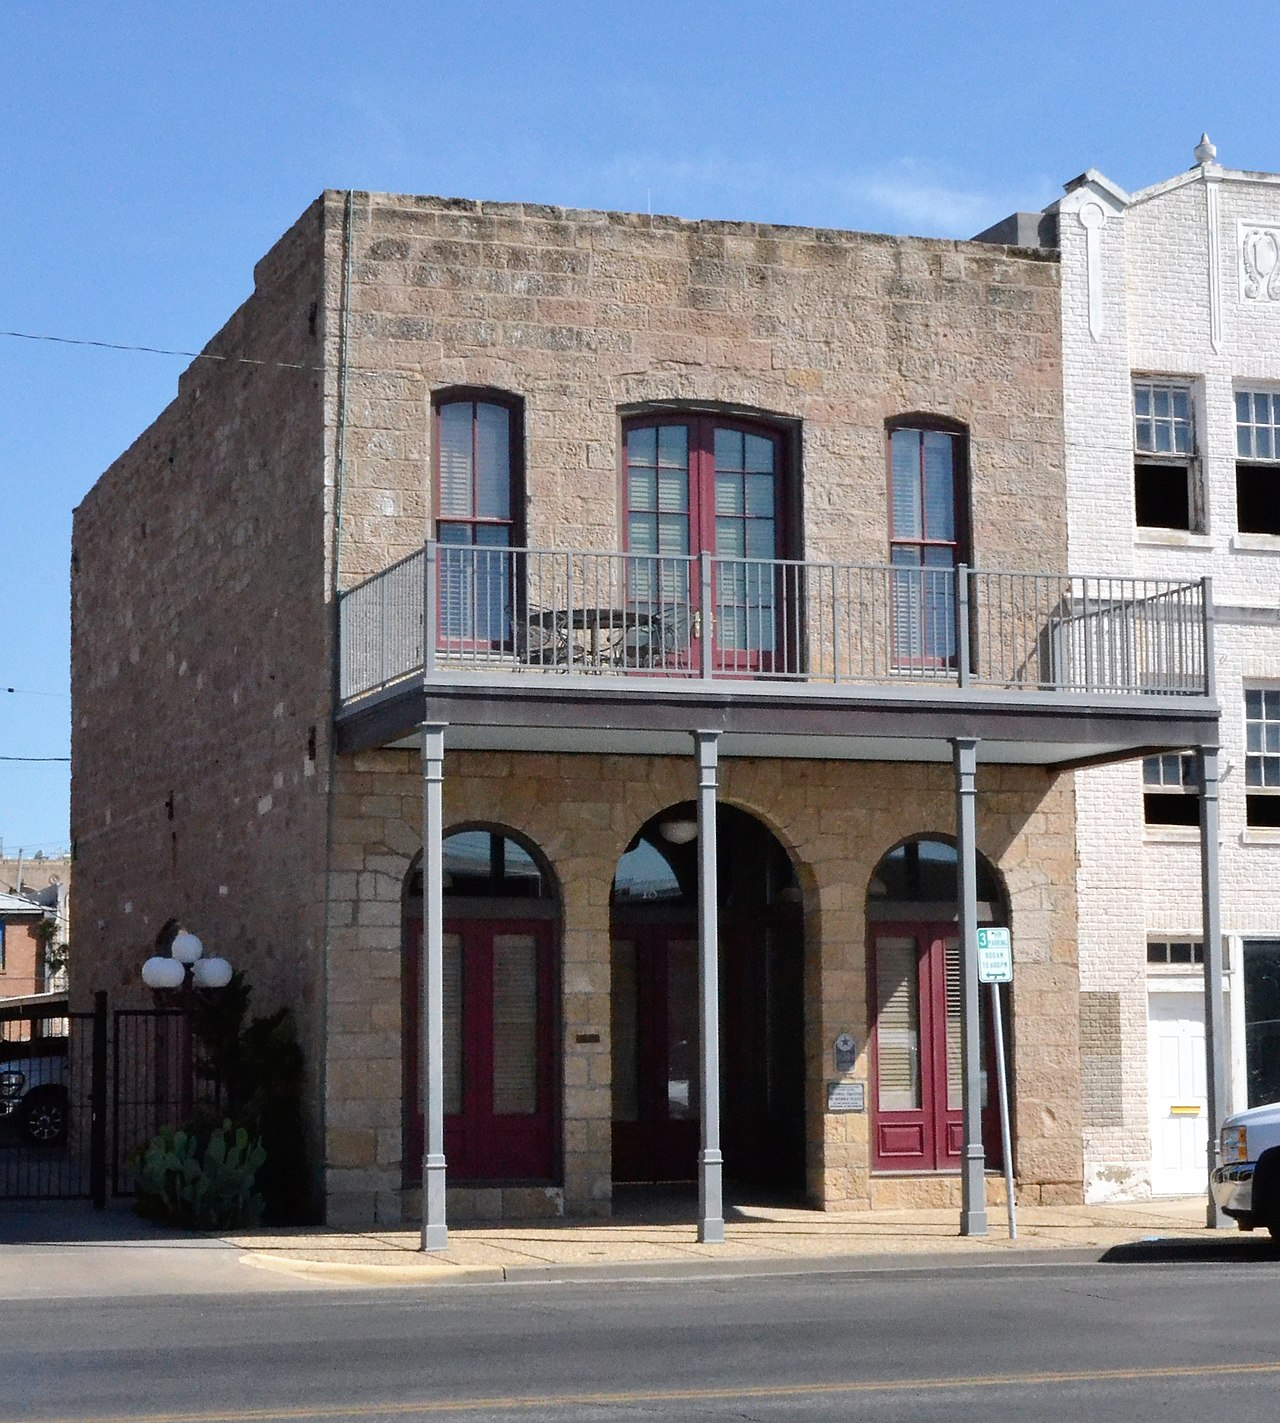 The Freeze Building was built in 1887 and is one of the oldest buildings in San Angelo.